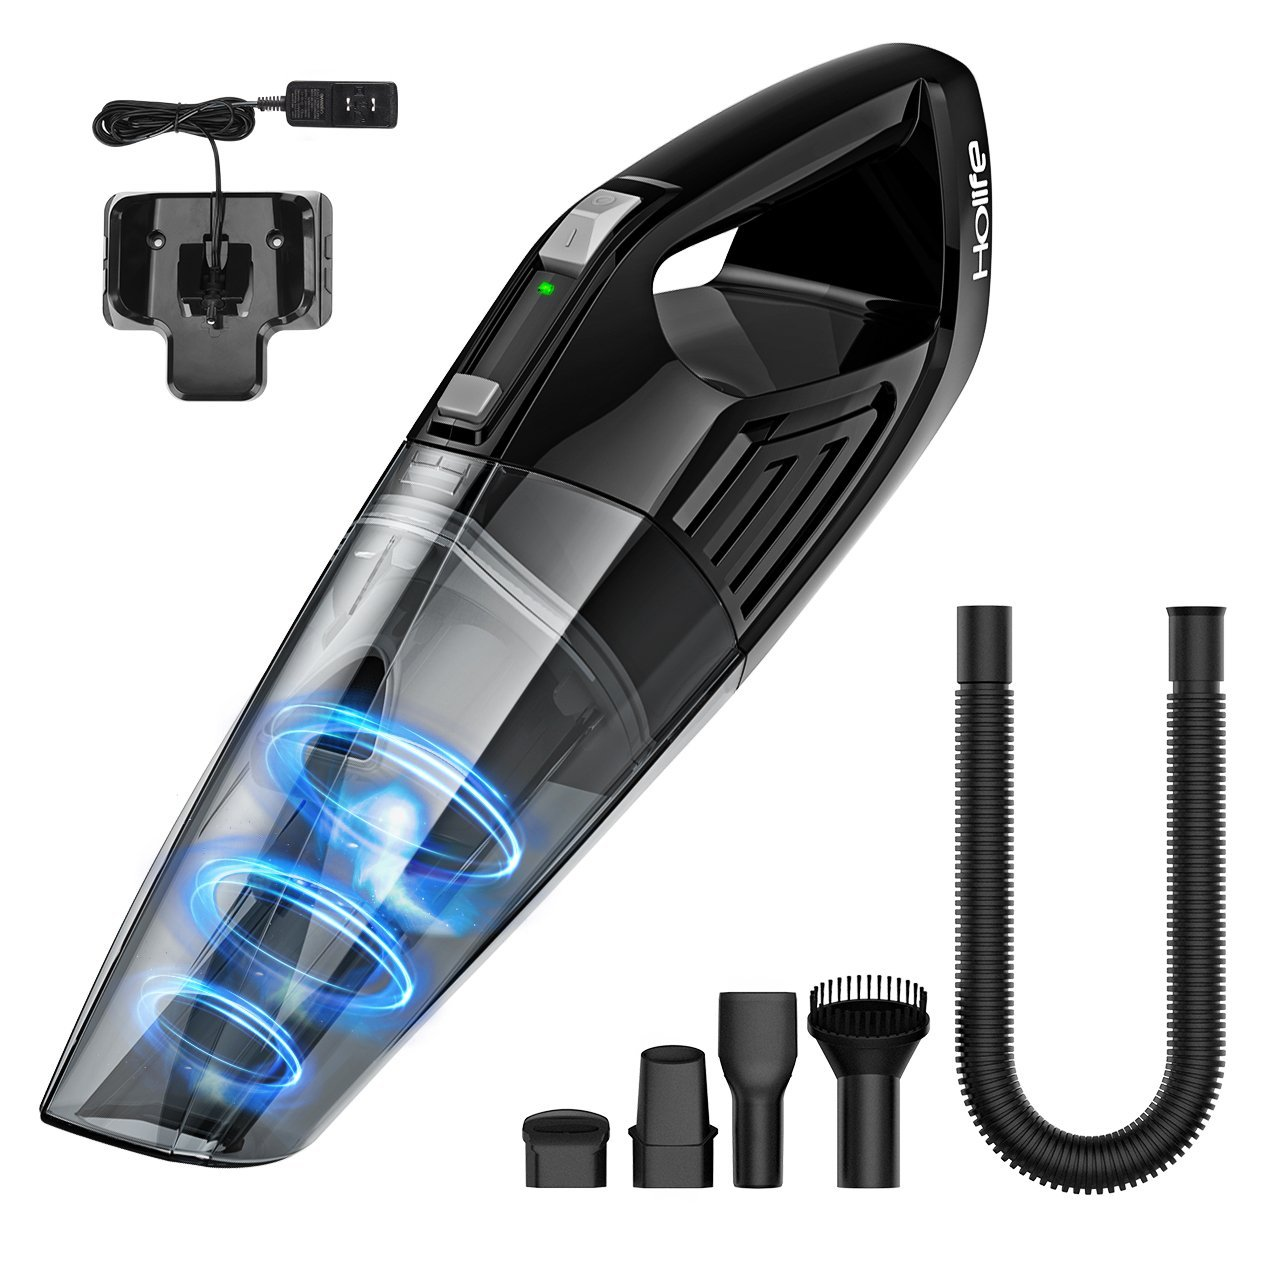 HoLife Cordless Vacuum Cleaner Black Friday Deals 2020